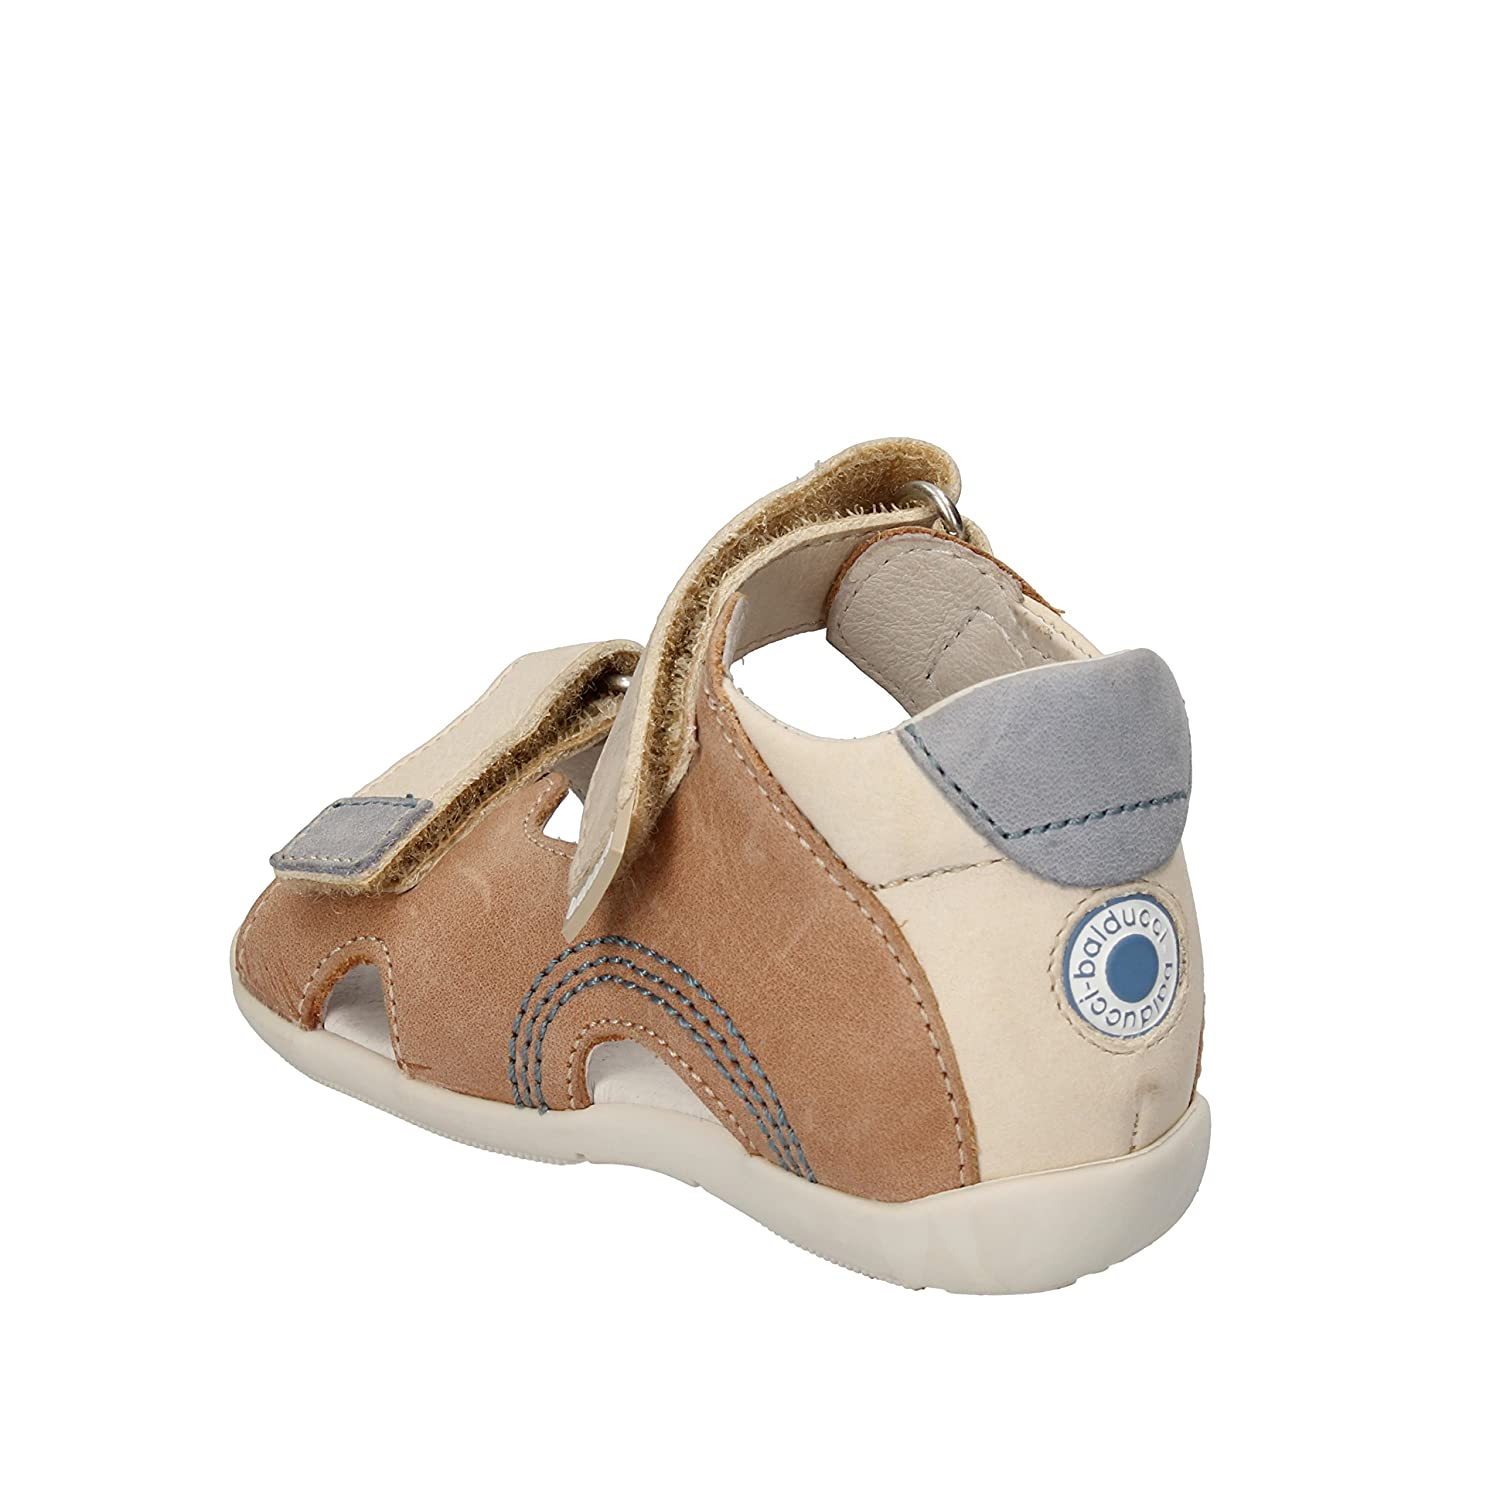 BALDUCCI Sandals Baby-Boys Leather Brown